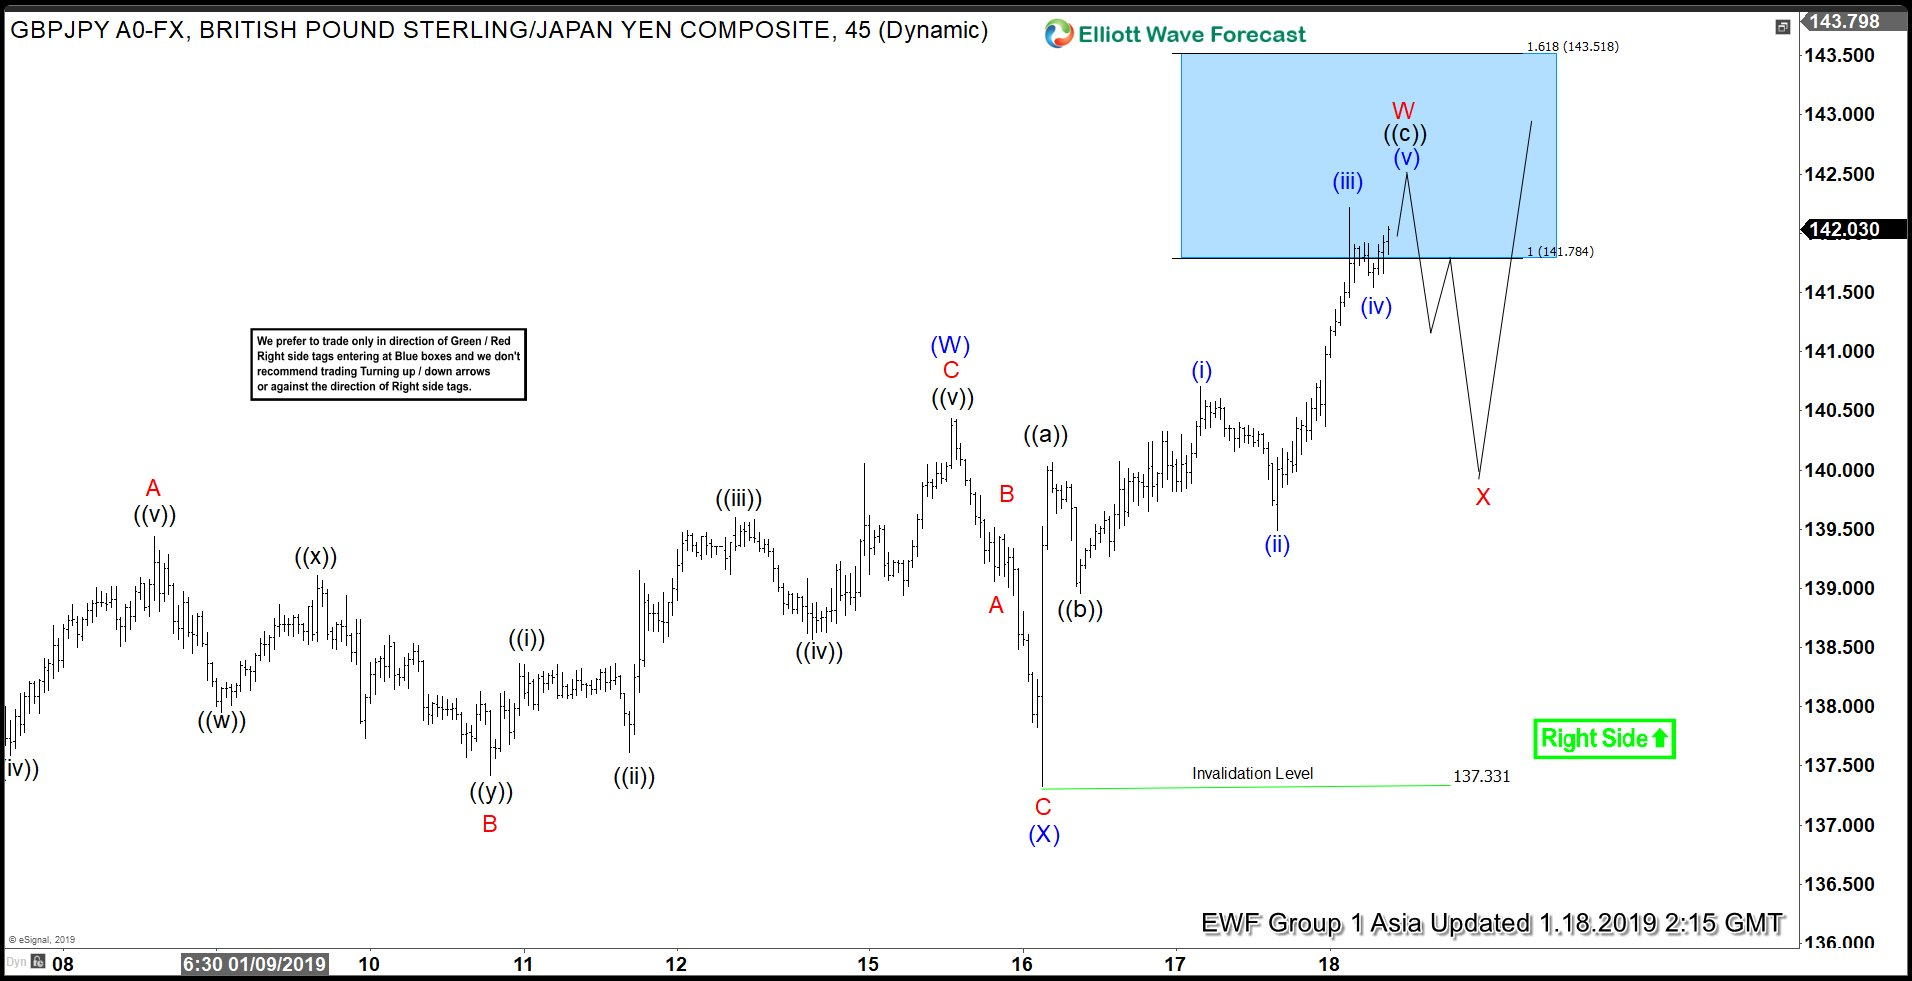 Elliott Wave view in GBPJPY favors upside bias